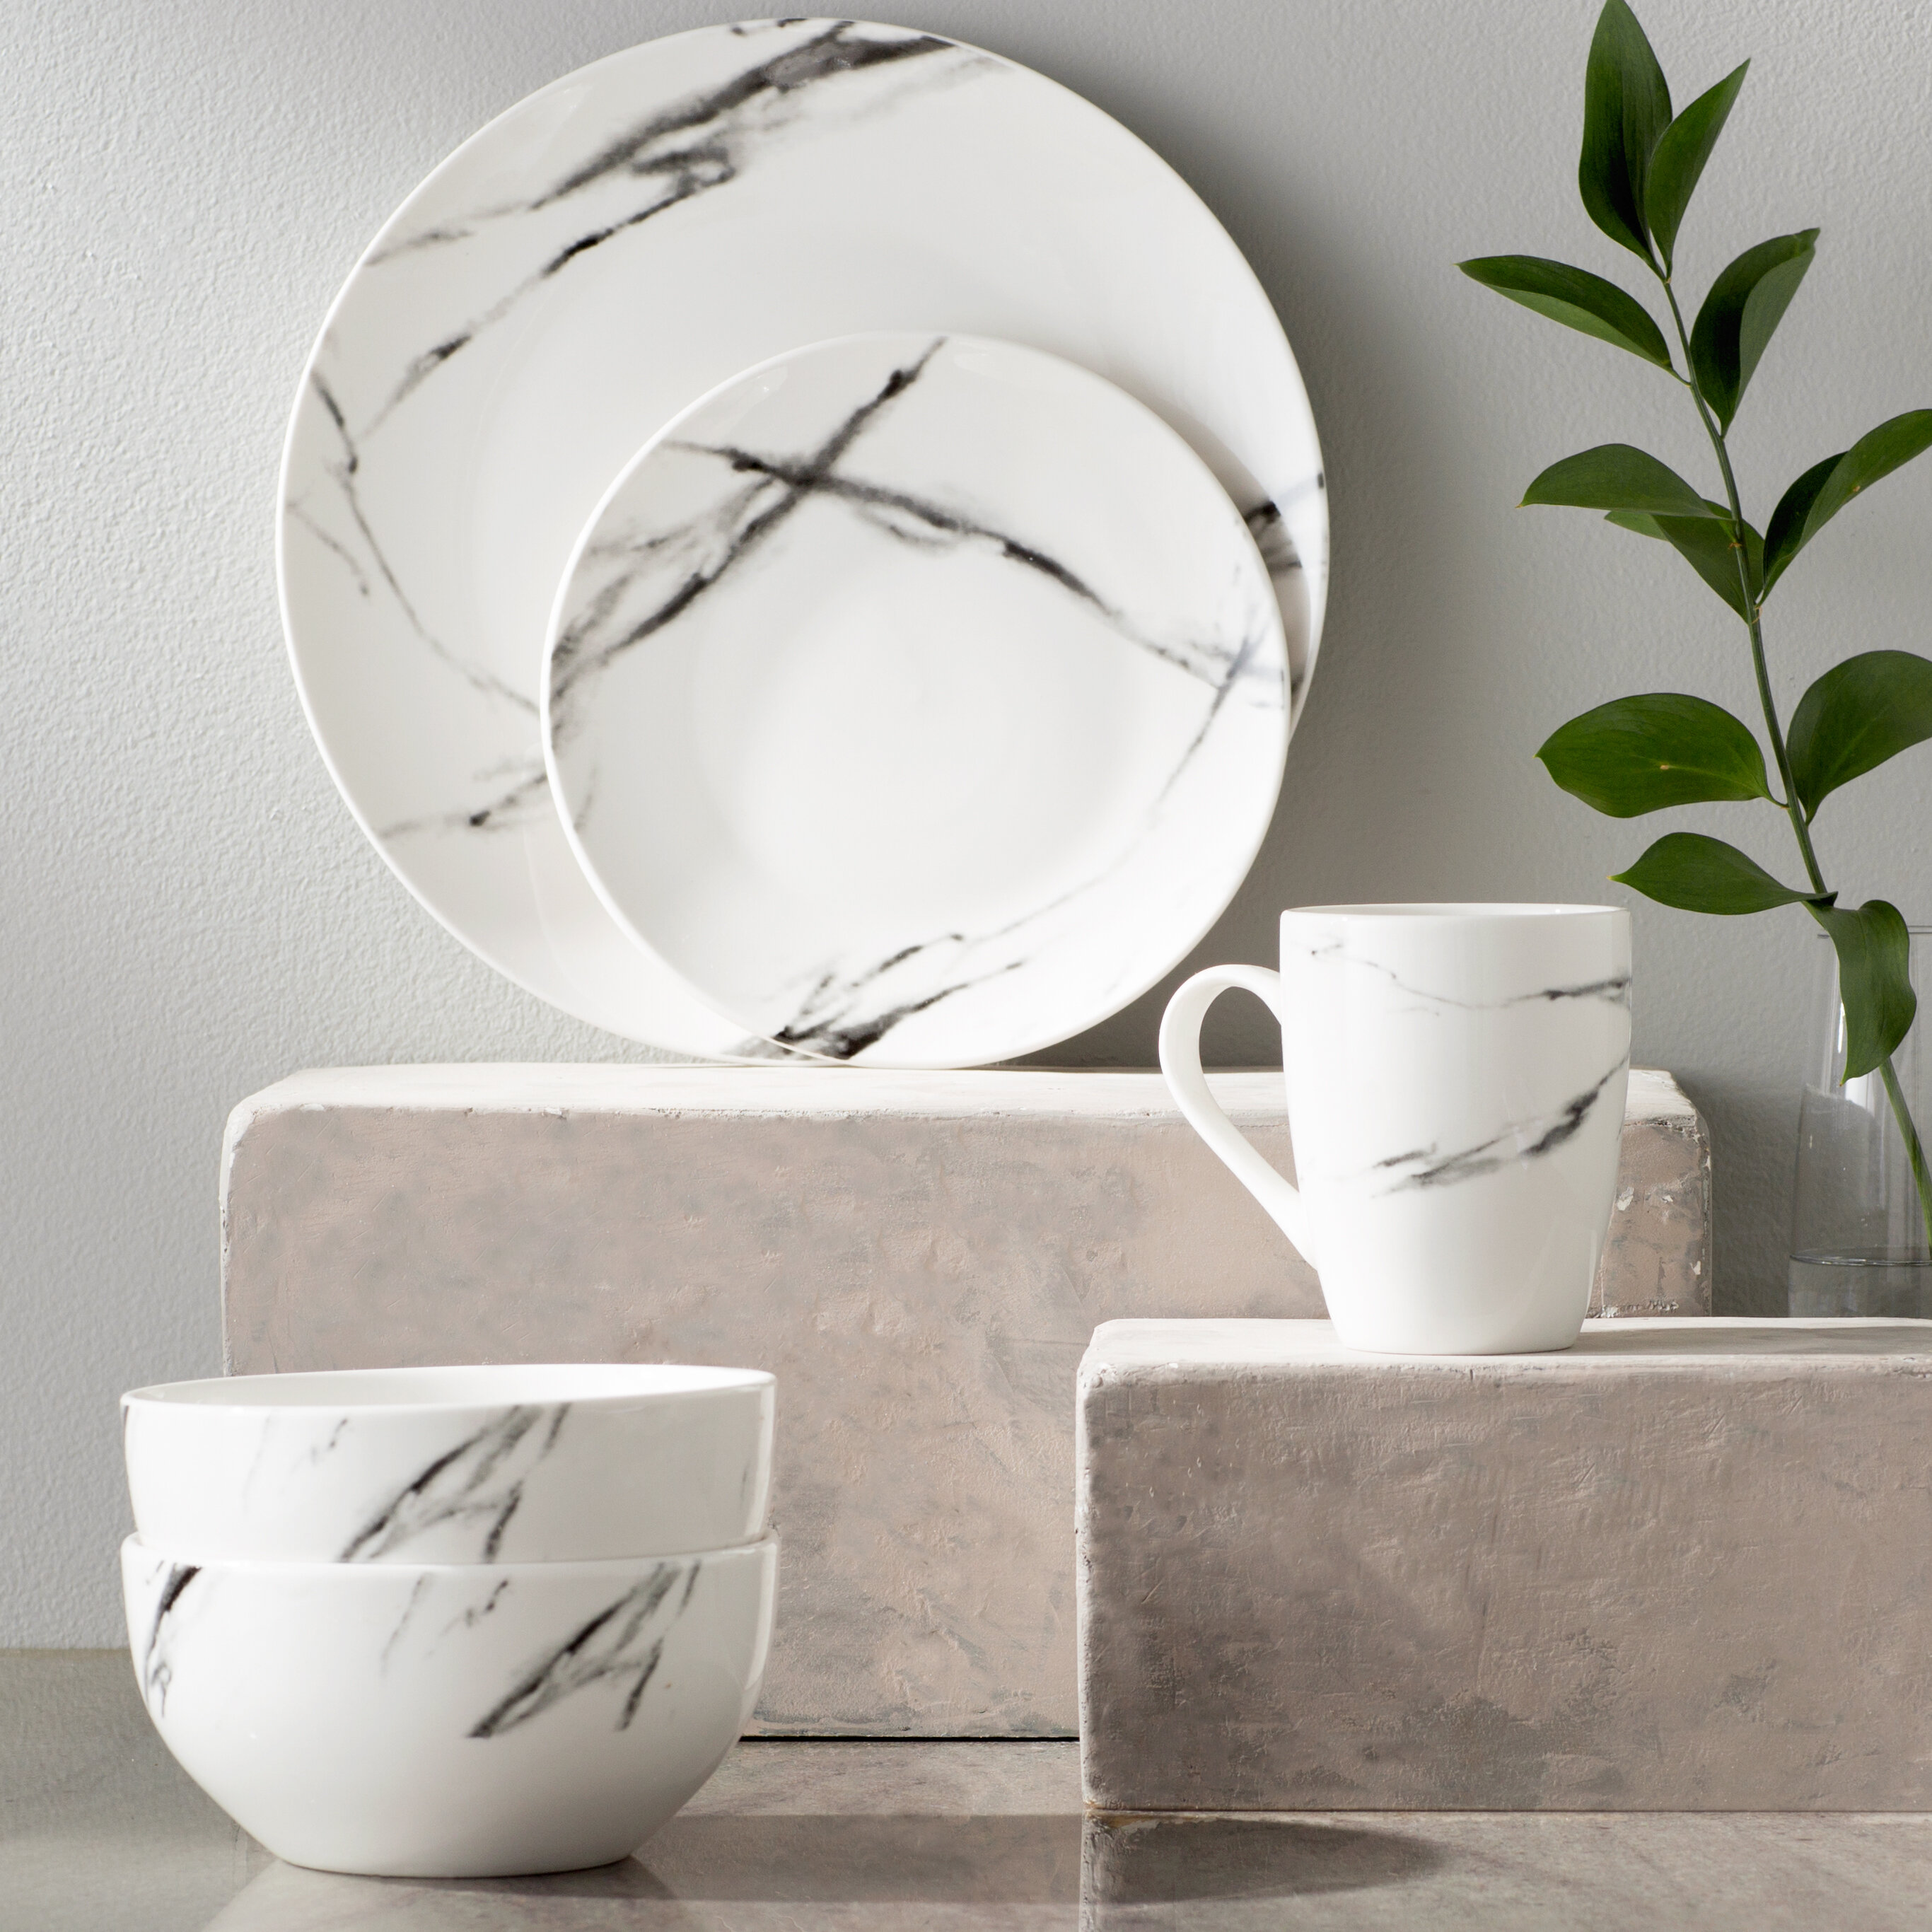 Microwave Safe Dinnerware Sets  Up to 5% Off This Labor Day